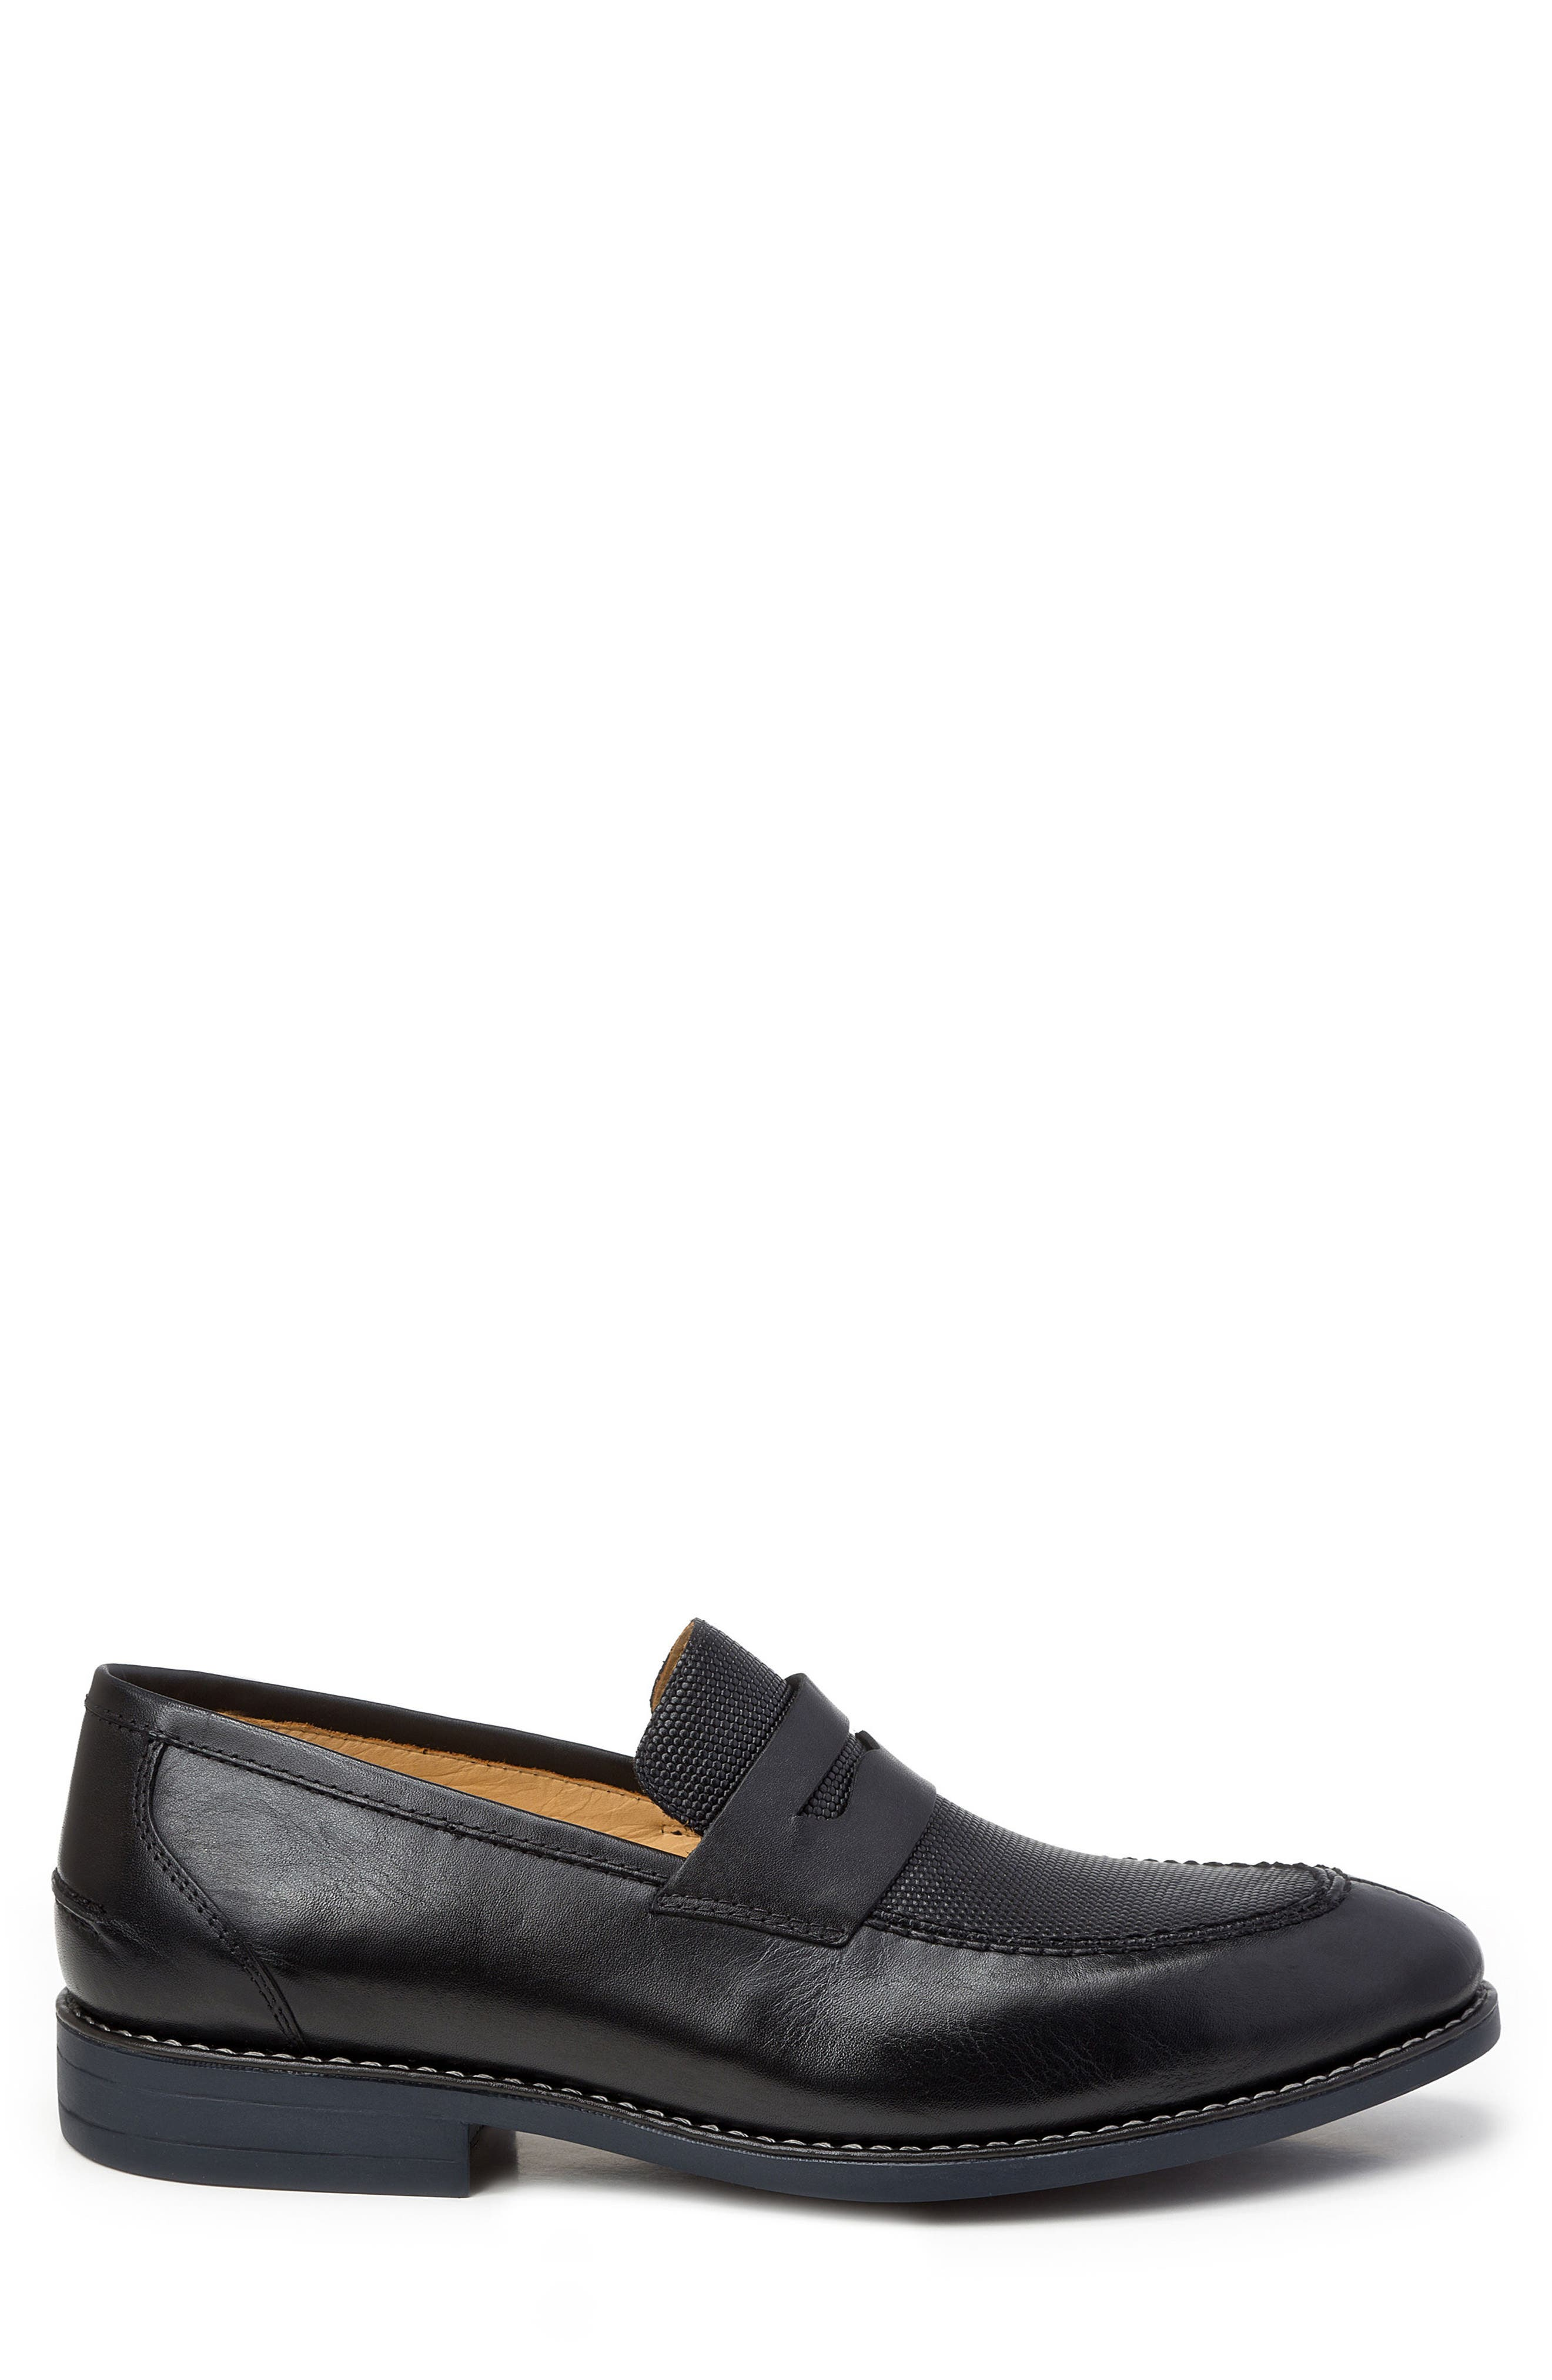 Maestro Penny Loafer,                             Alternate thumbnail 3, color,                             BLACK LEATHER